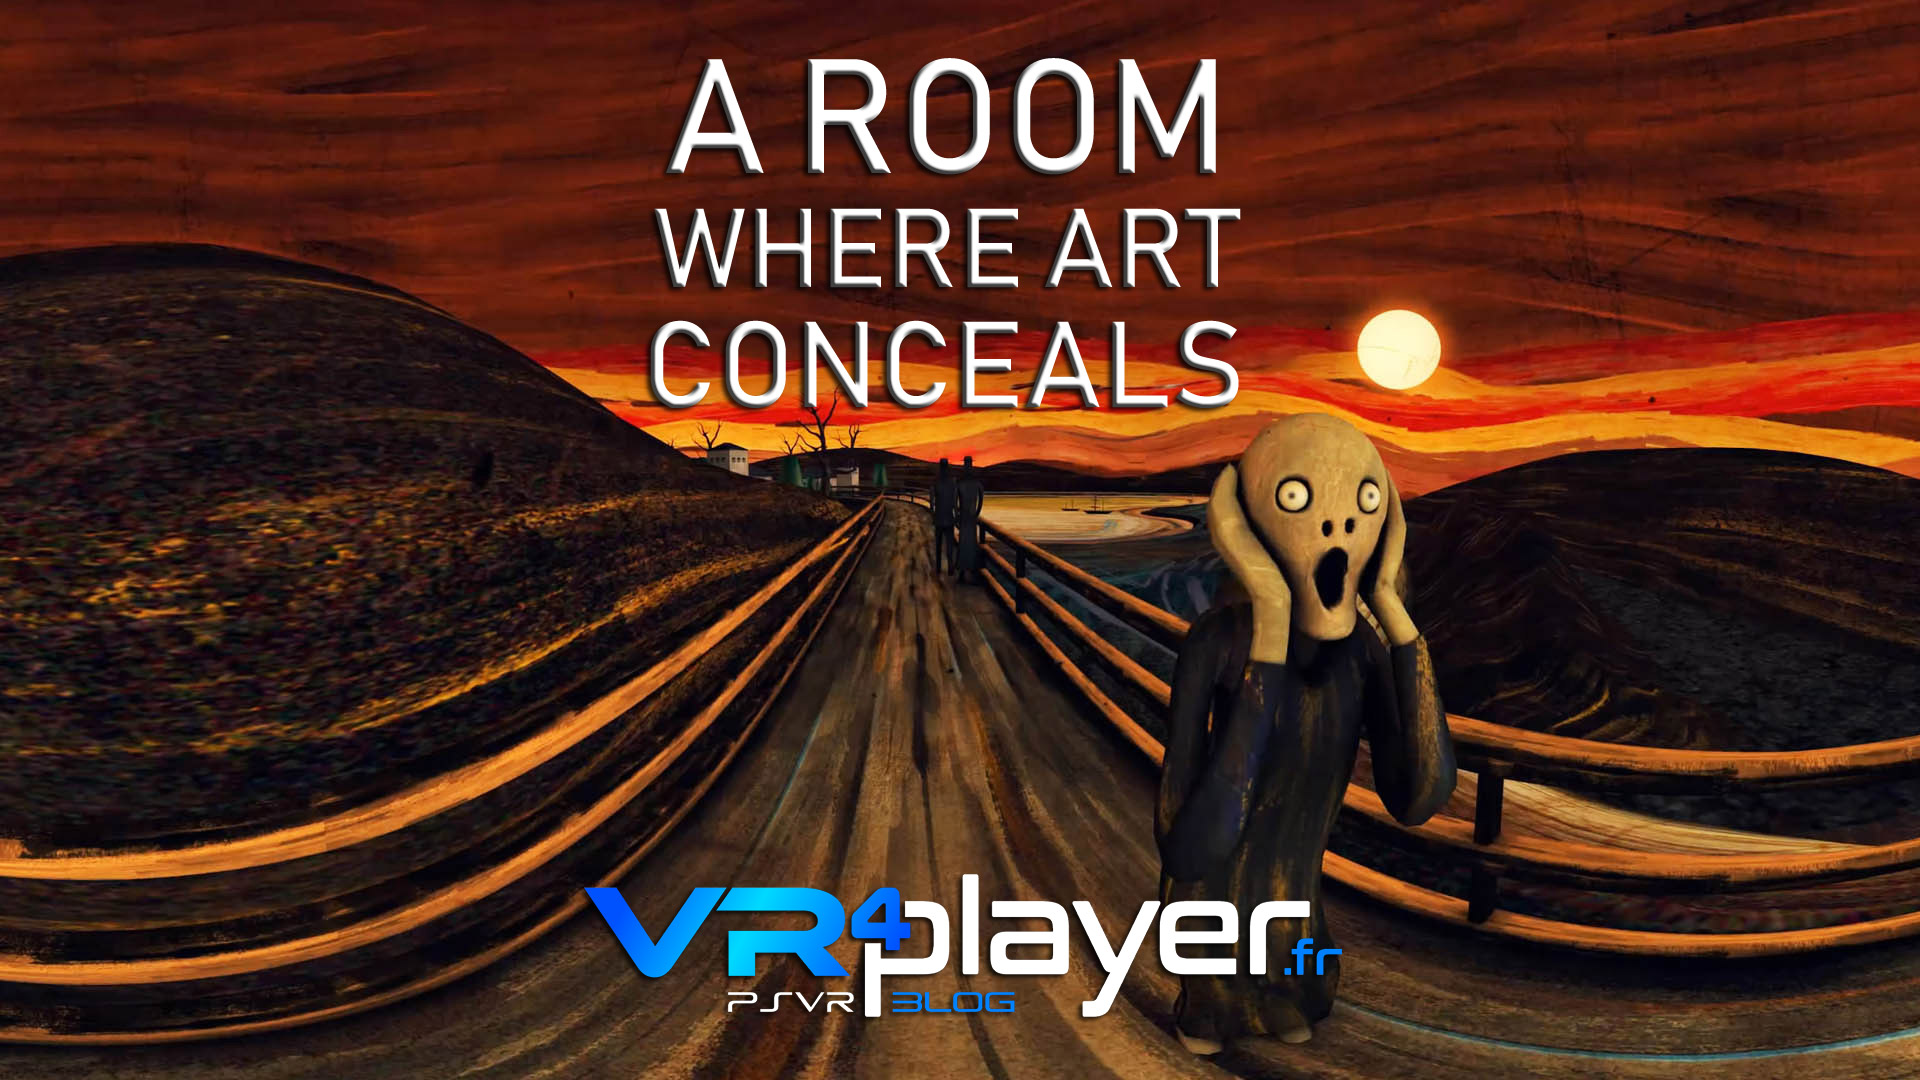 A ROOM WHERE ART CONCEALS PSVR VR4player.fr